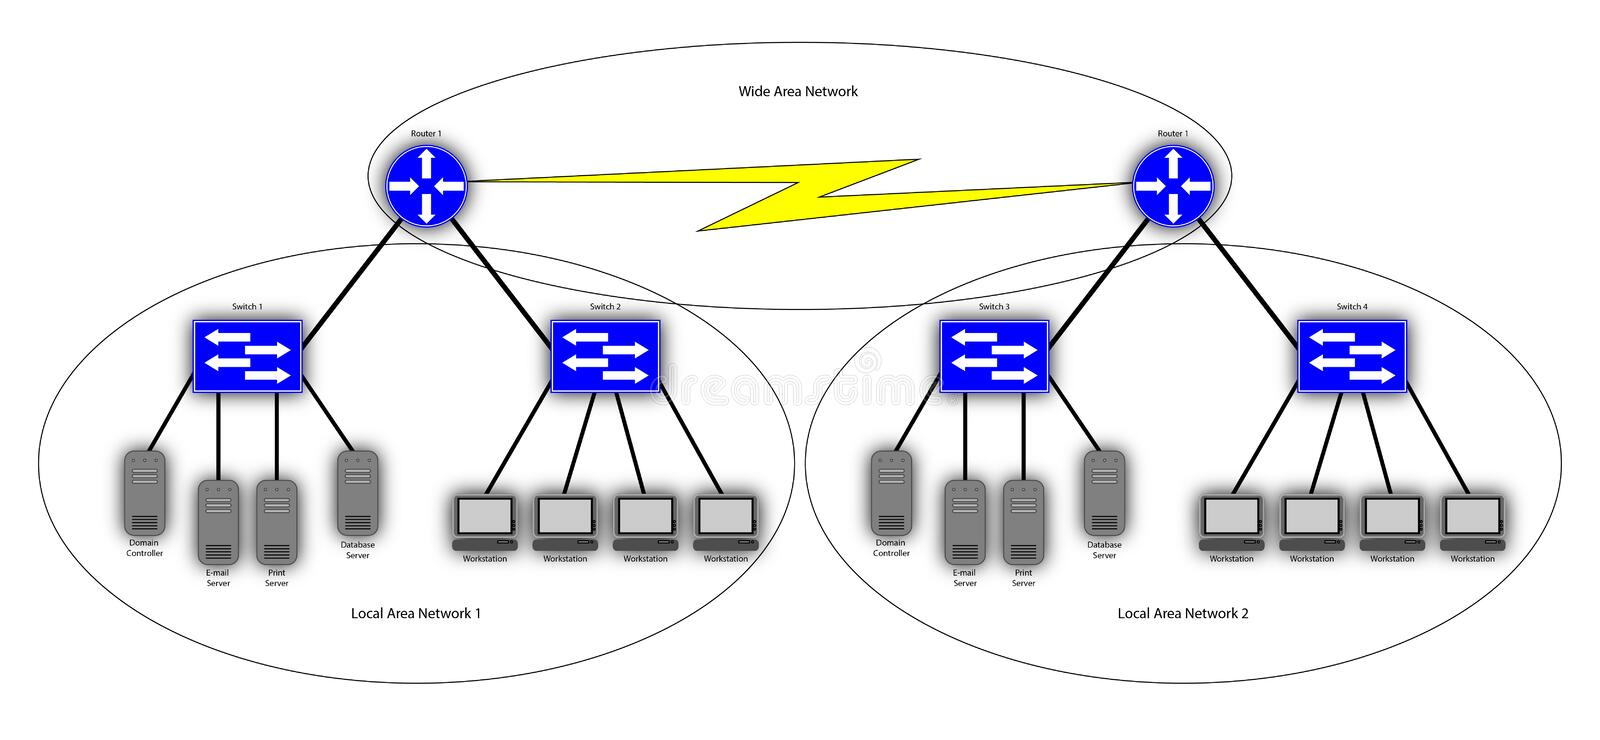 Wide Area Network Diagram. An diagram of Wide Area Network connecting 2 Local Area Network royalty free illustration